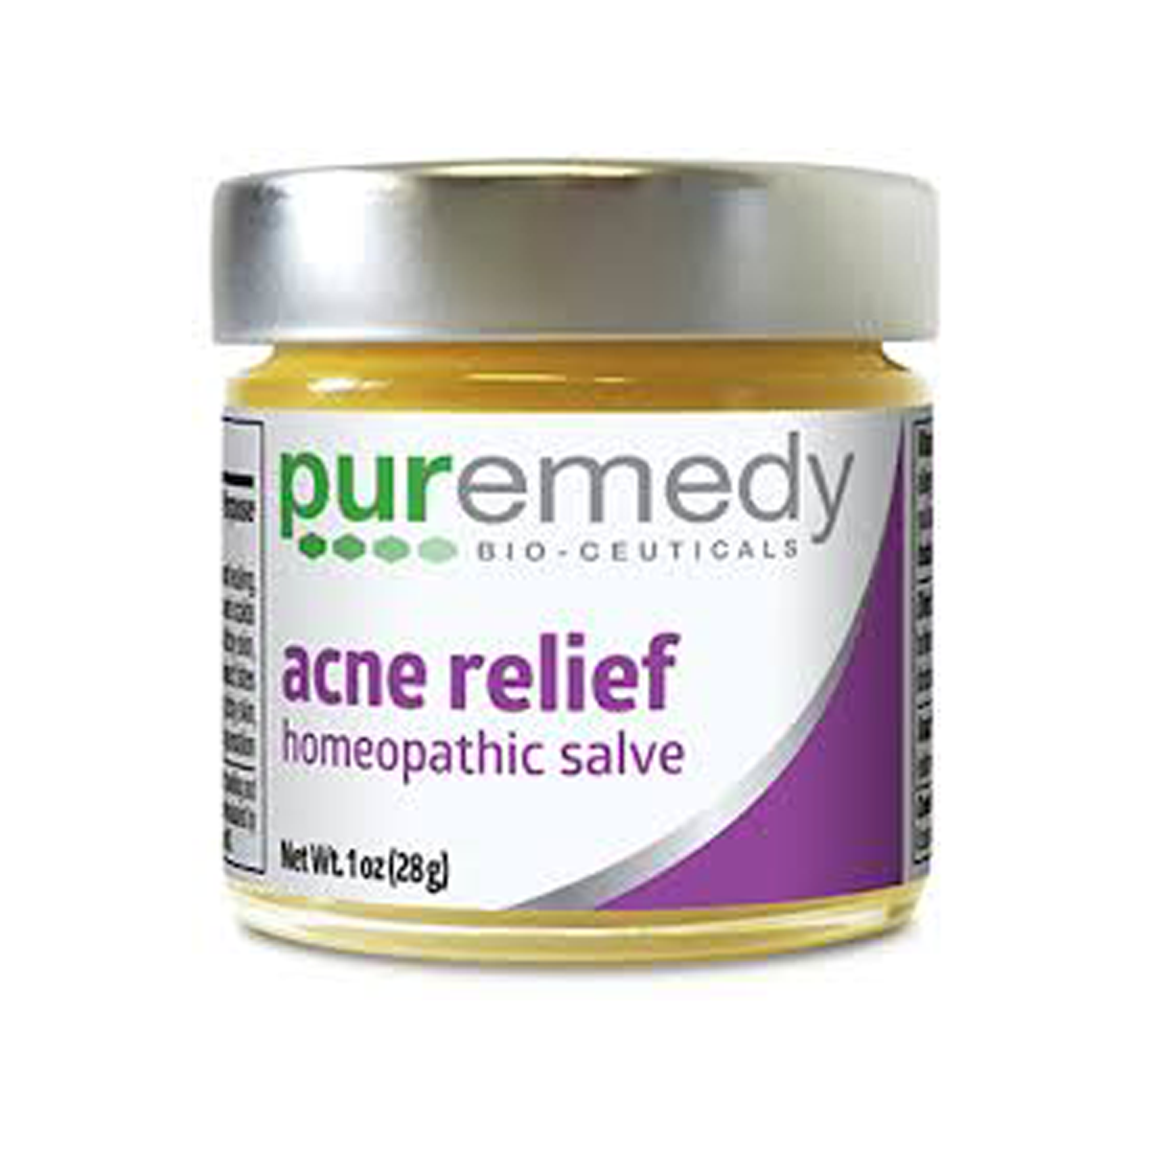 Puremedy Acne Relief, natural acne cream